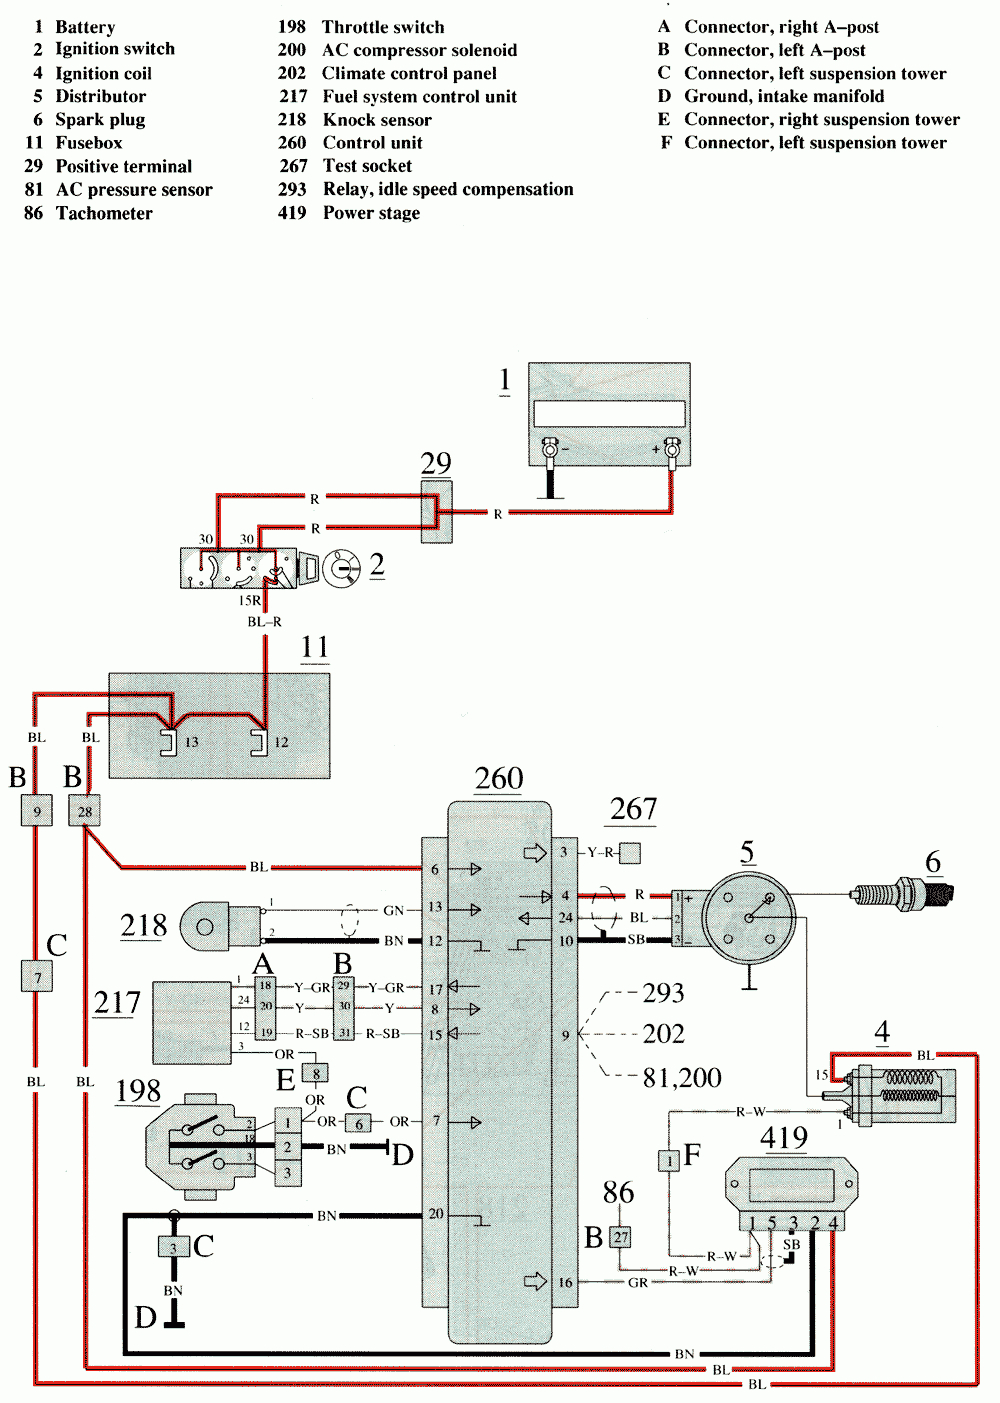 86 volvo coil wiring - wiring diagram save ball-energy-a -  ball-energy-a.citisceramiche.it  citisceramiche.it